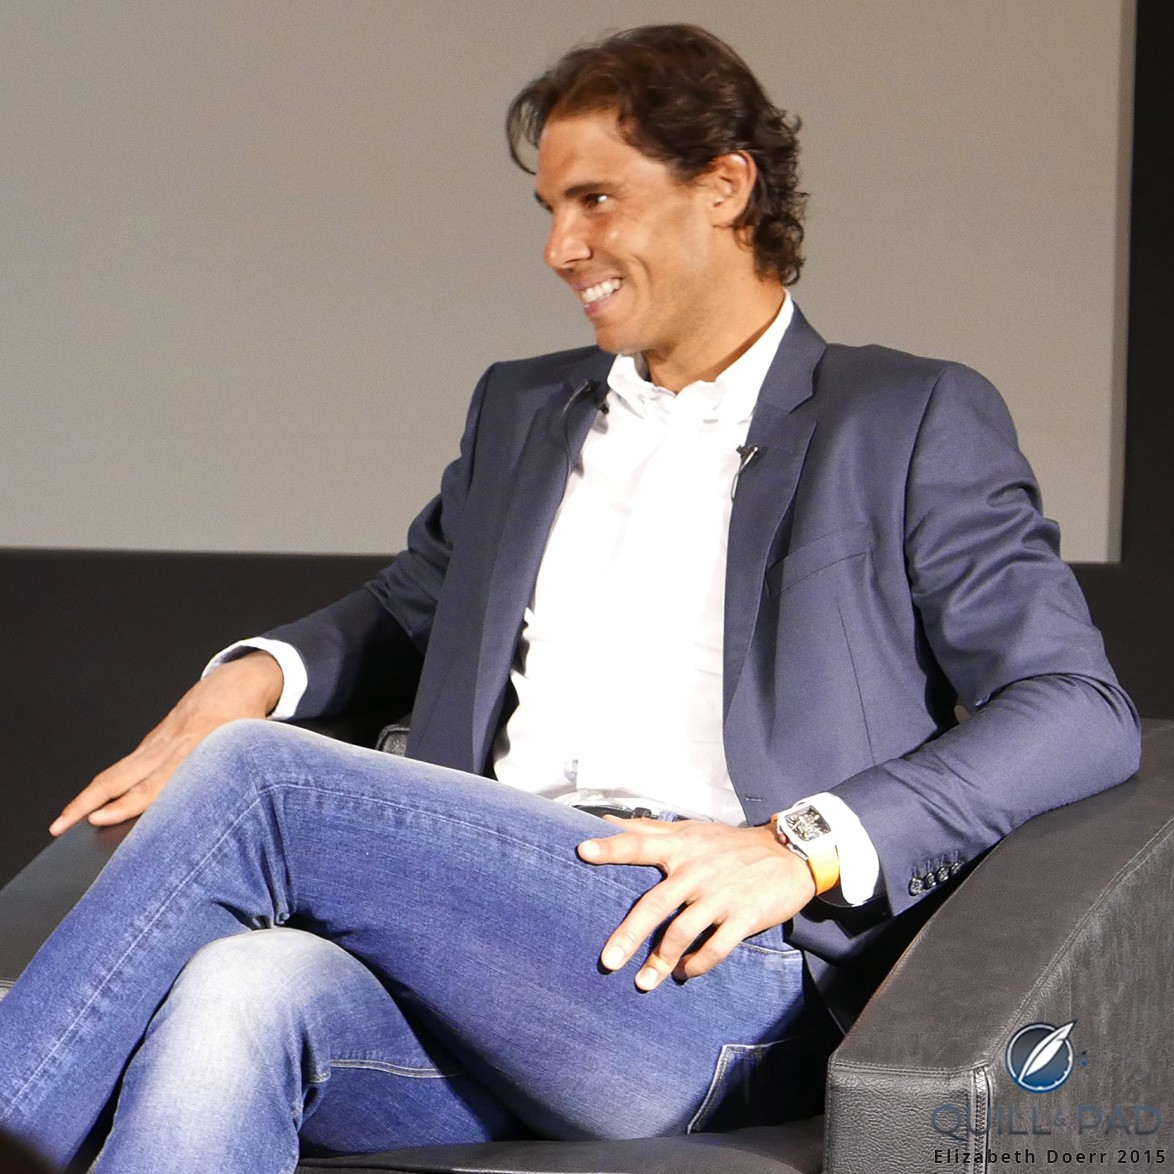 Rafael Nadal looking relaxed at the press conference announcing the Richard Mille RM 27-02